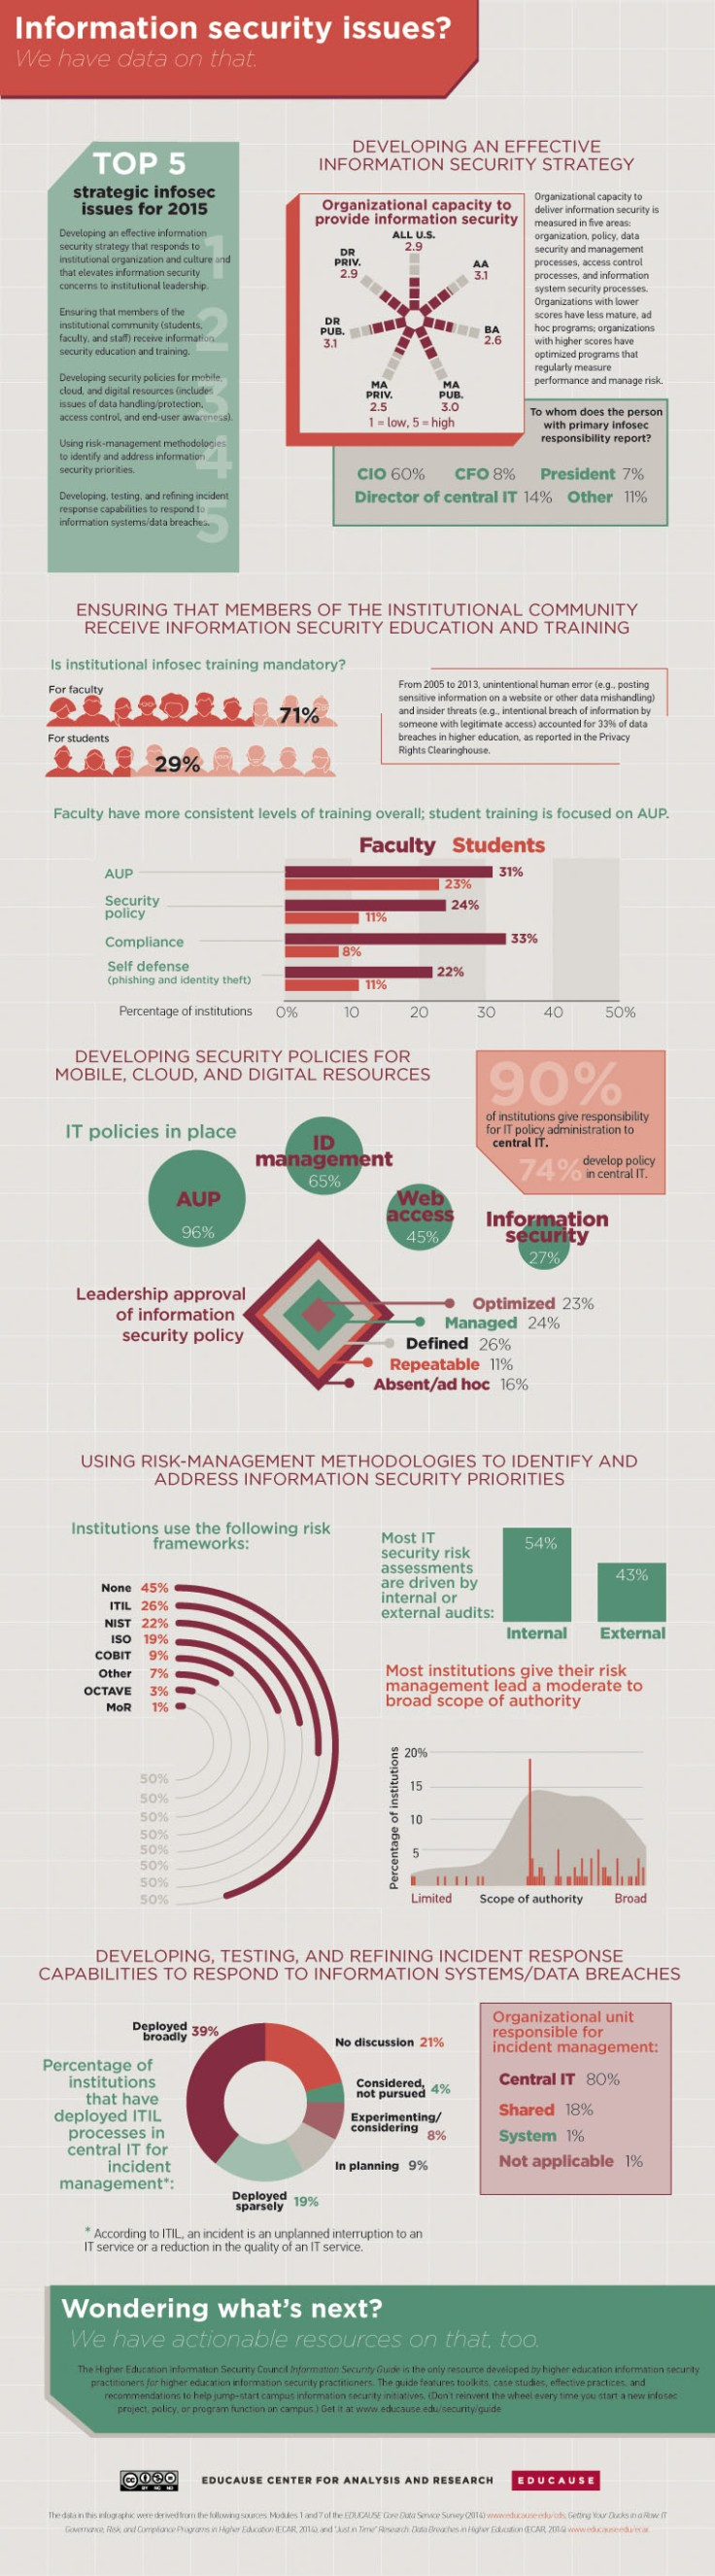 educause-infographic'